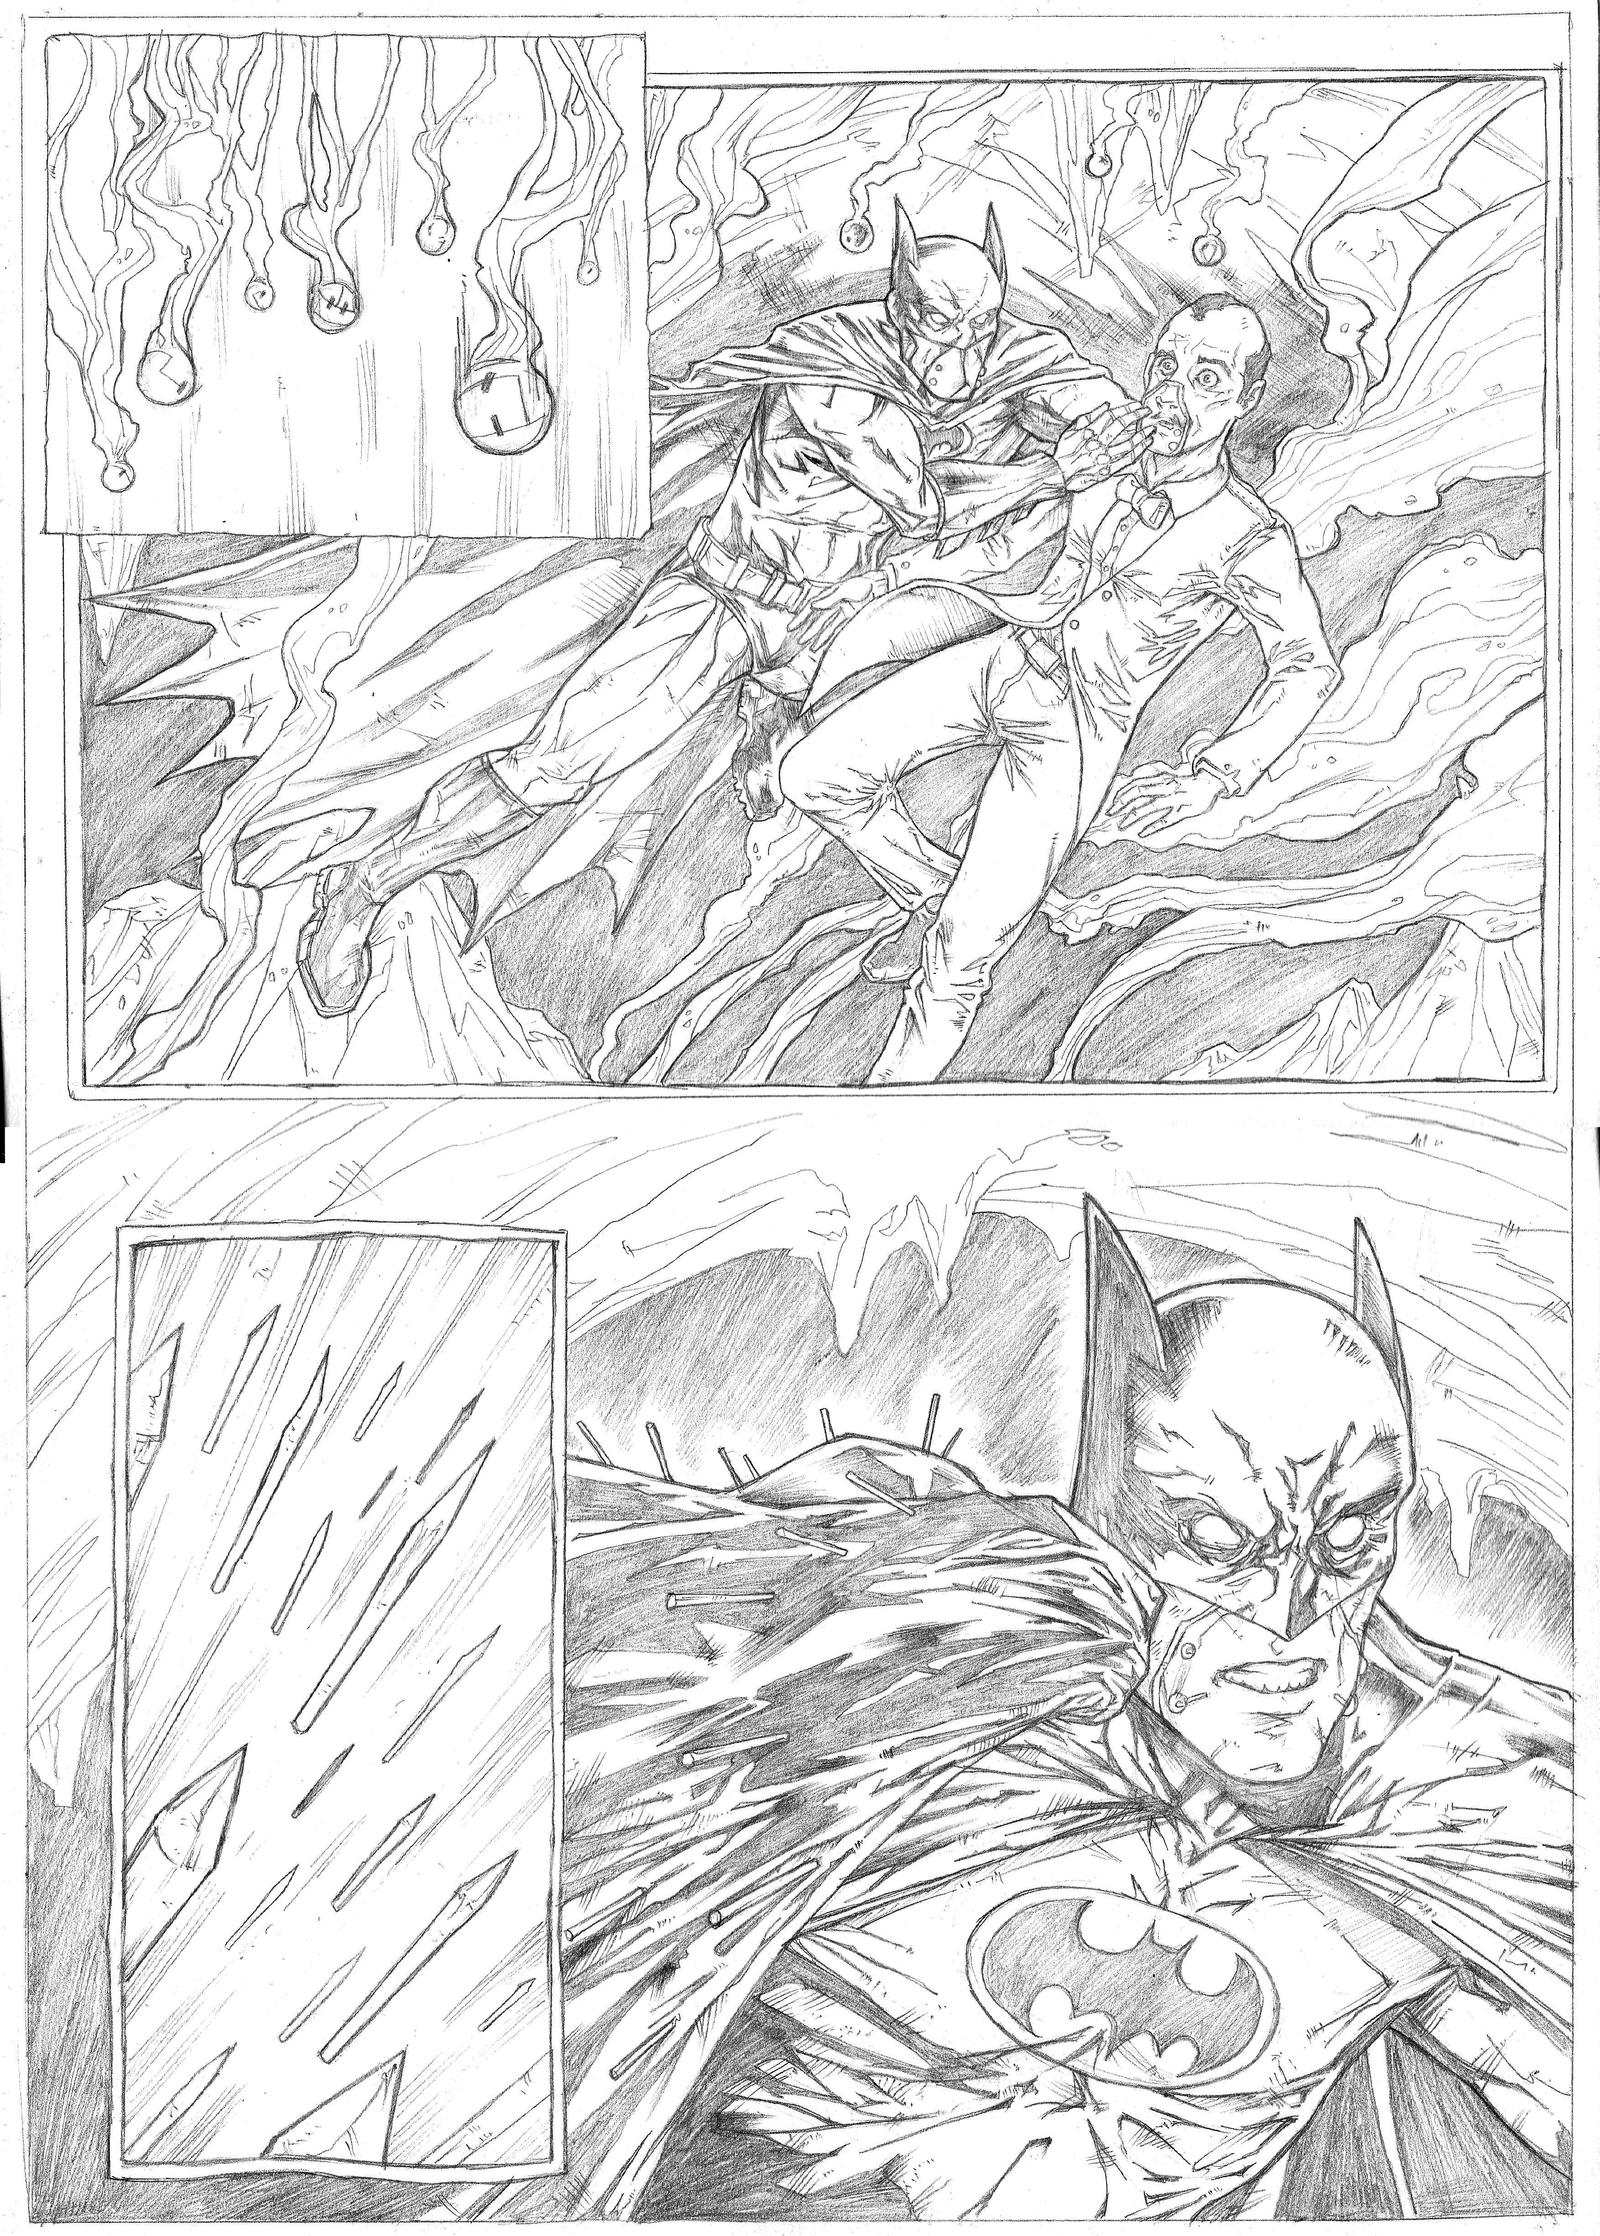 Batman page 2 Sample - A3 pencil by IgorChakal